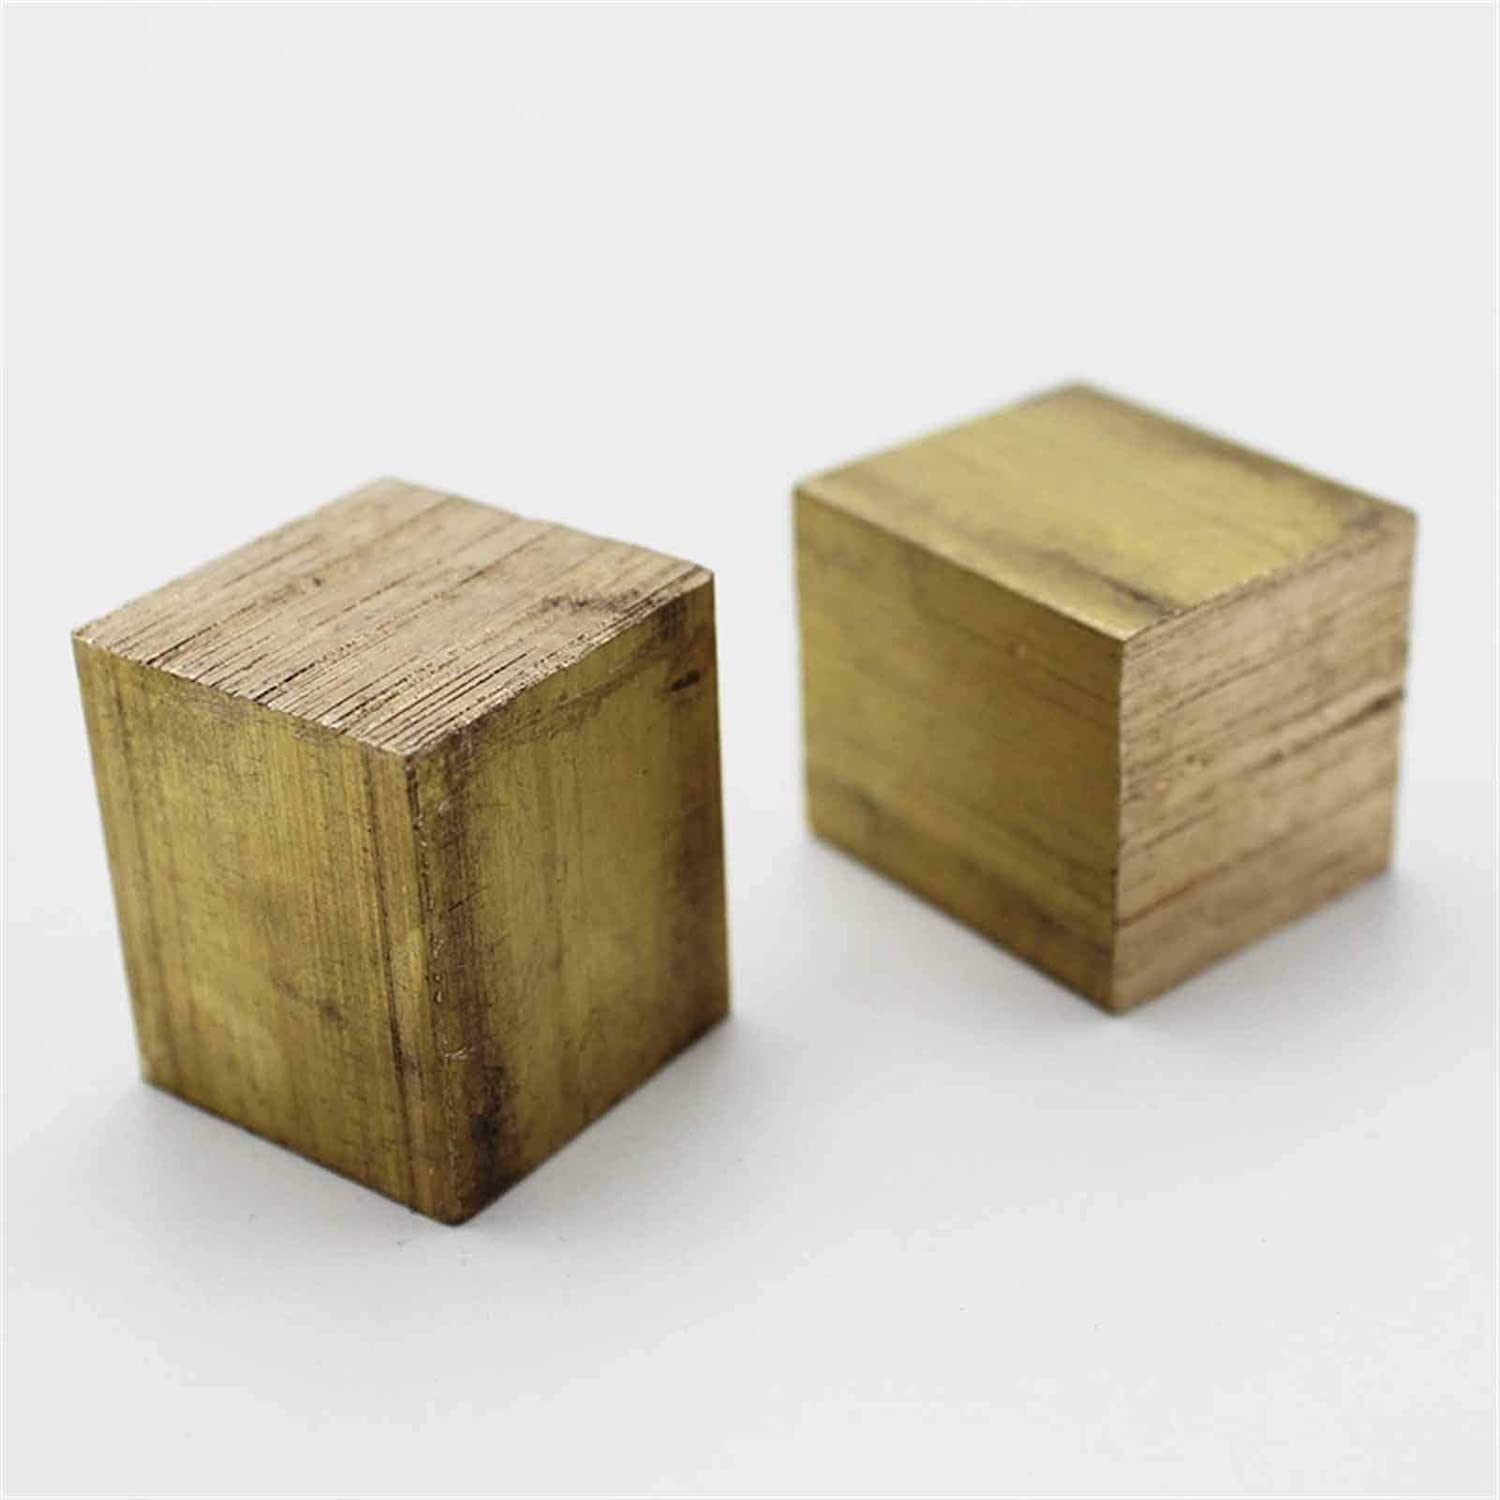 IINSSDJ DIY Hardware Accessories Square Brass Block For Welding And Brazing Good Electrical Conductivity Thermal Conductivity Size : 20x20x20mm 1pc